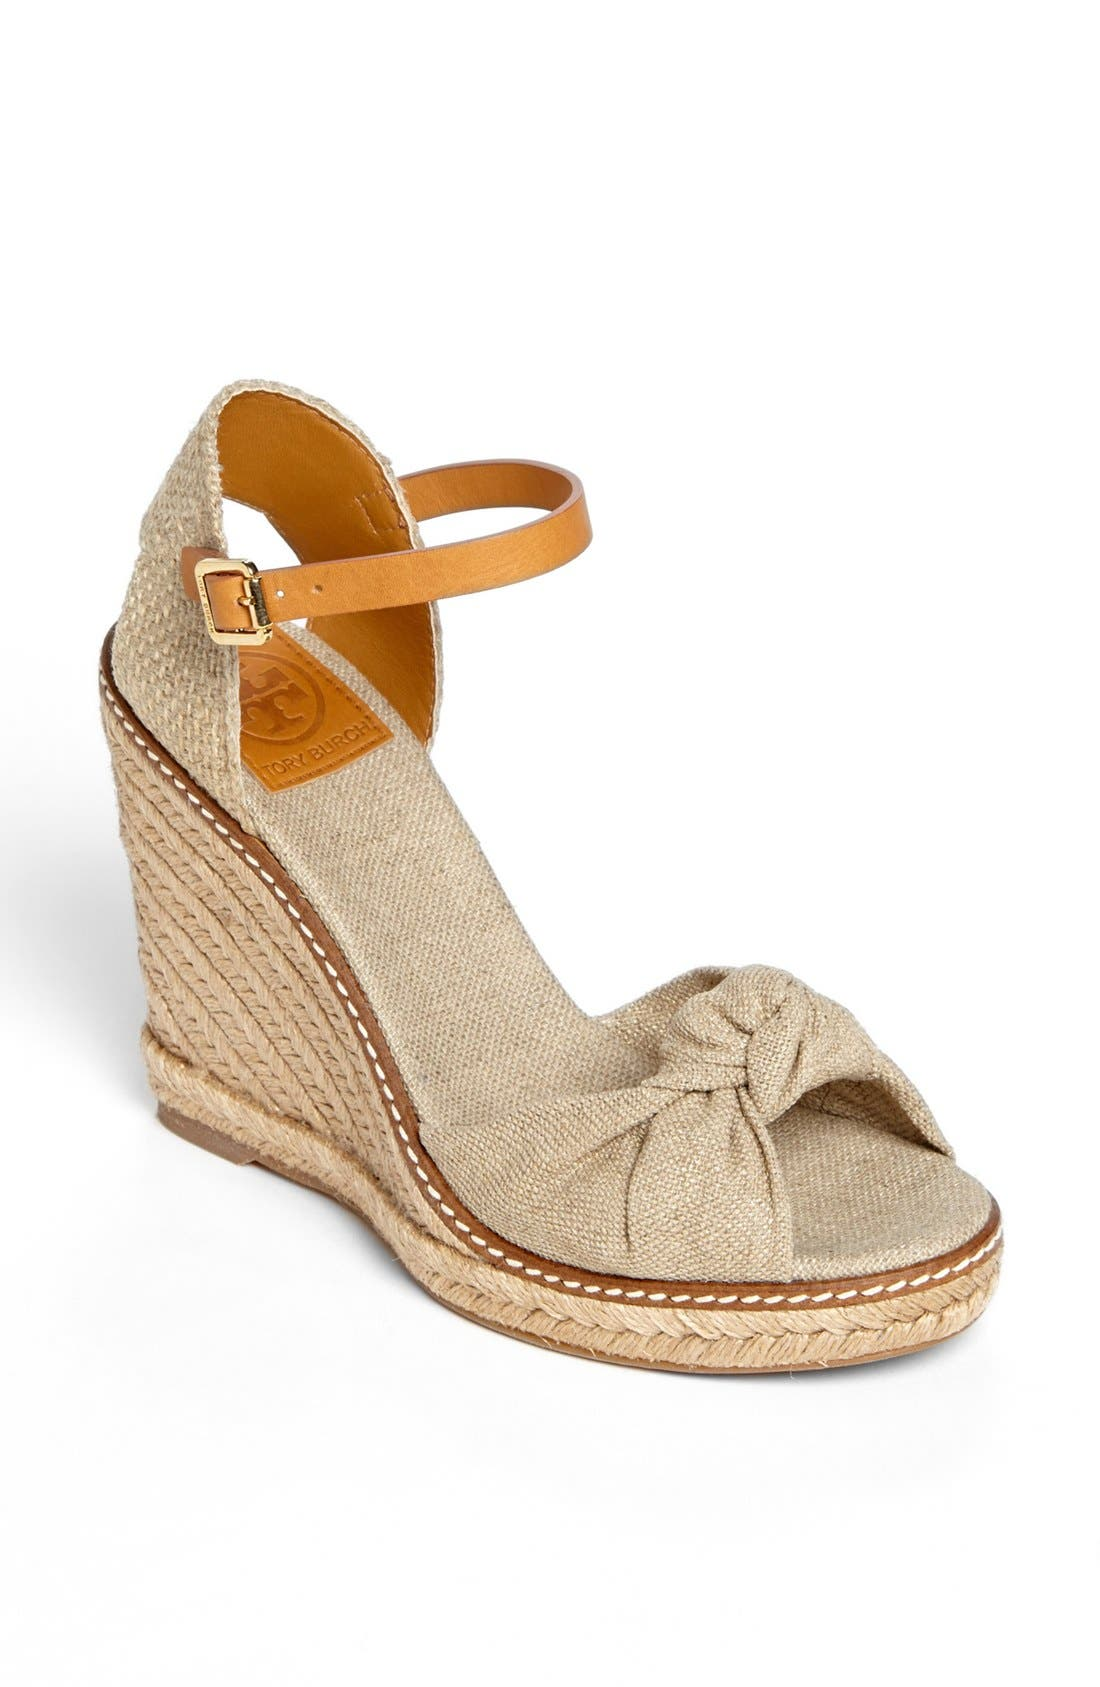 Alternate Image 1 Selected - Tory Burch 'Macy' Leather Wedge Espadrille Sandal